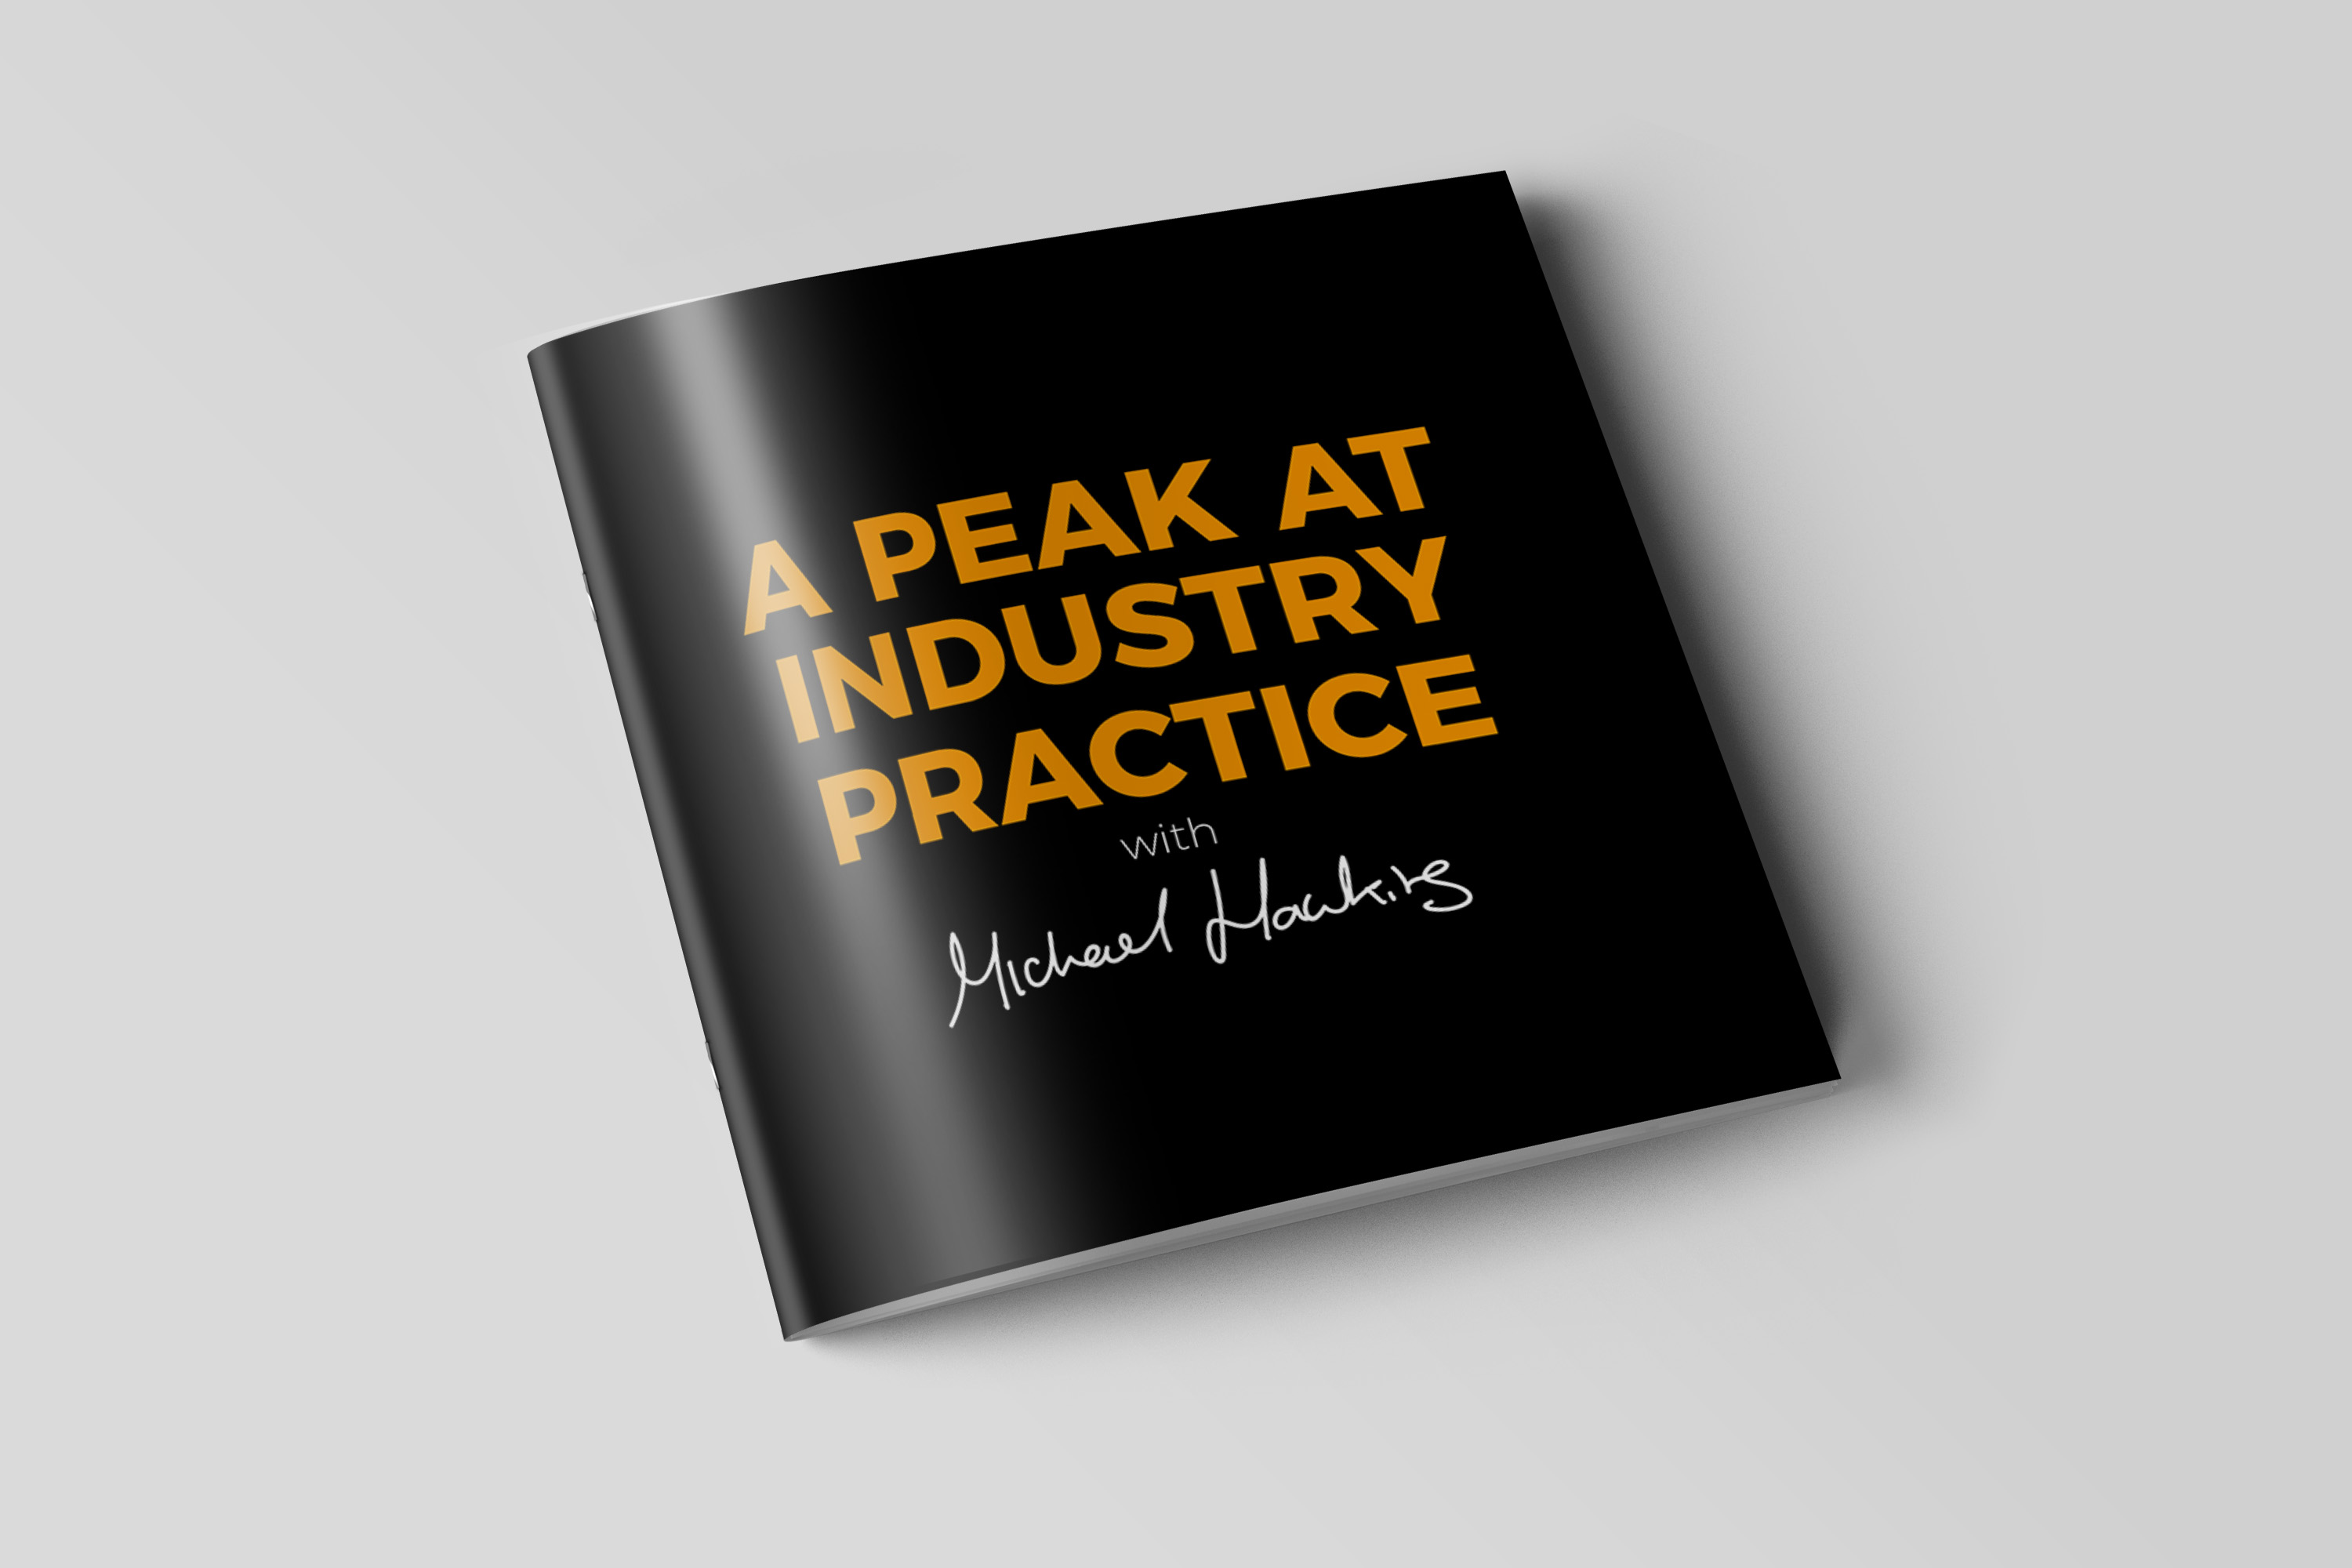 Industry Practice Booklet